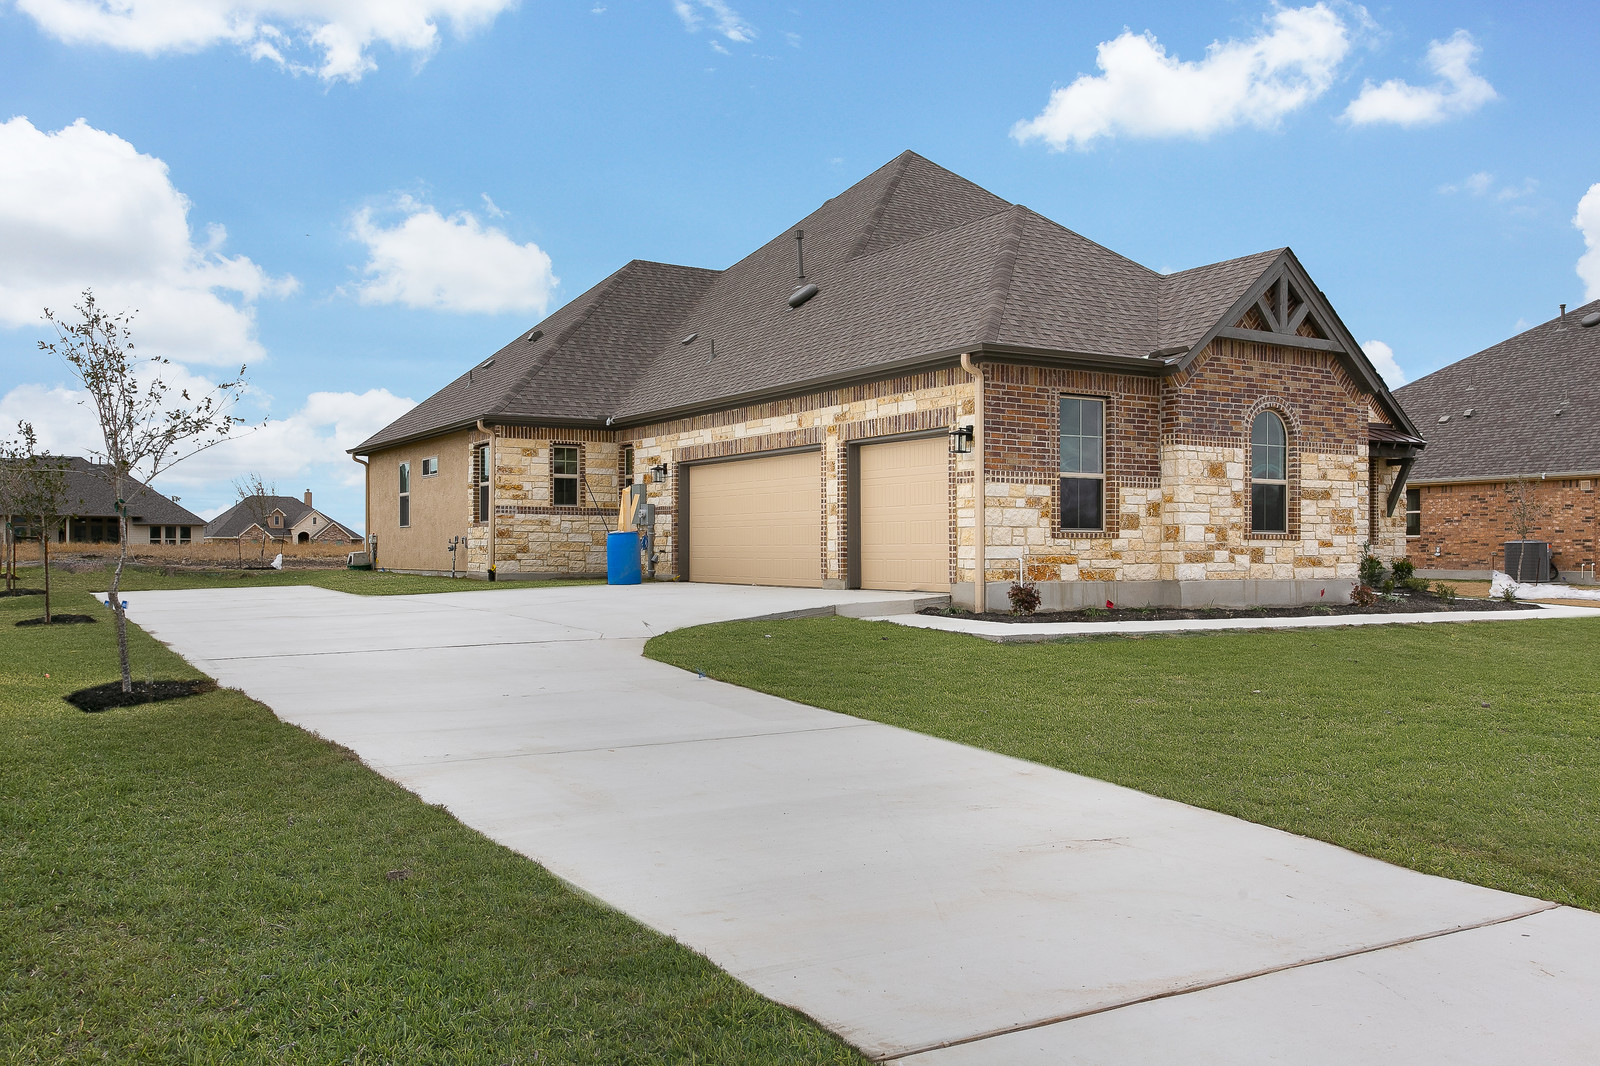 New Homes, Move In Ready Homes And Build On Your Lot